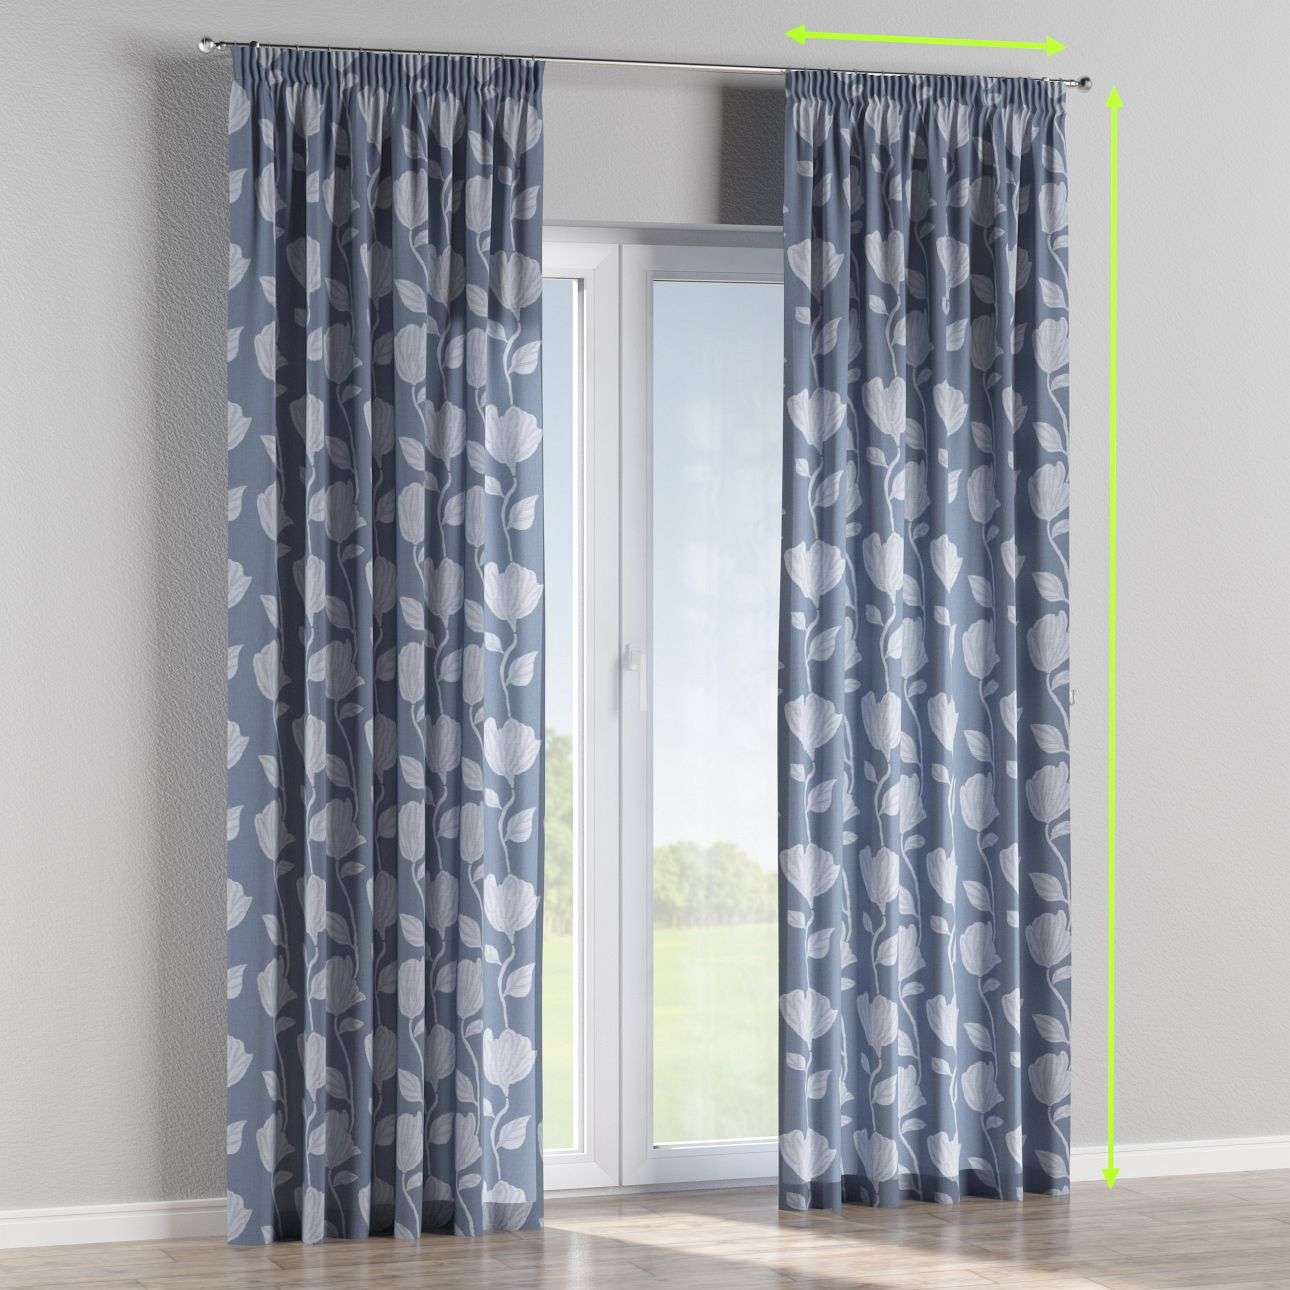 Pencil pleat curtains in collection Venice, fabric: 140-61